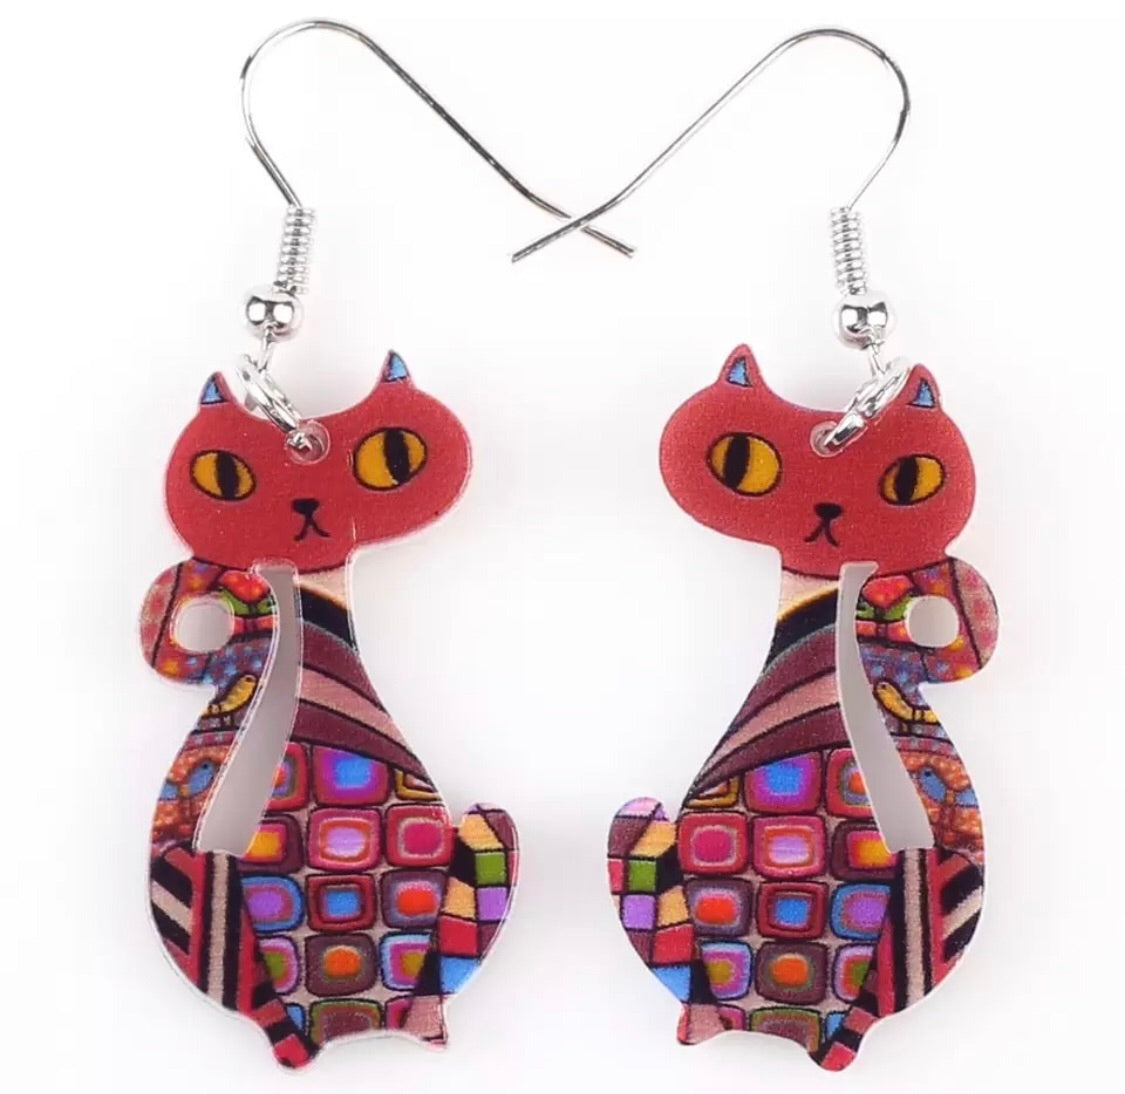 Midcentury style kitty earrings - red